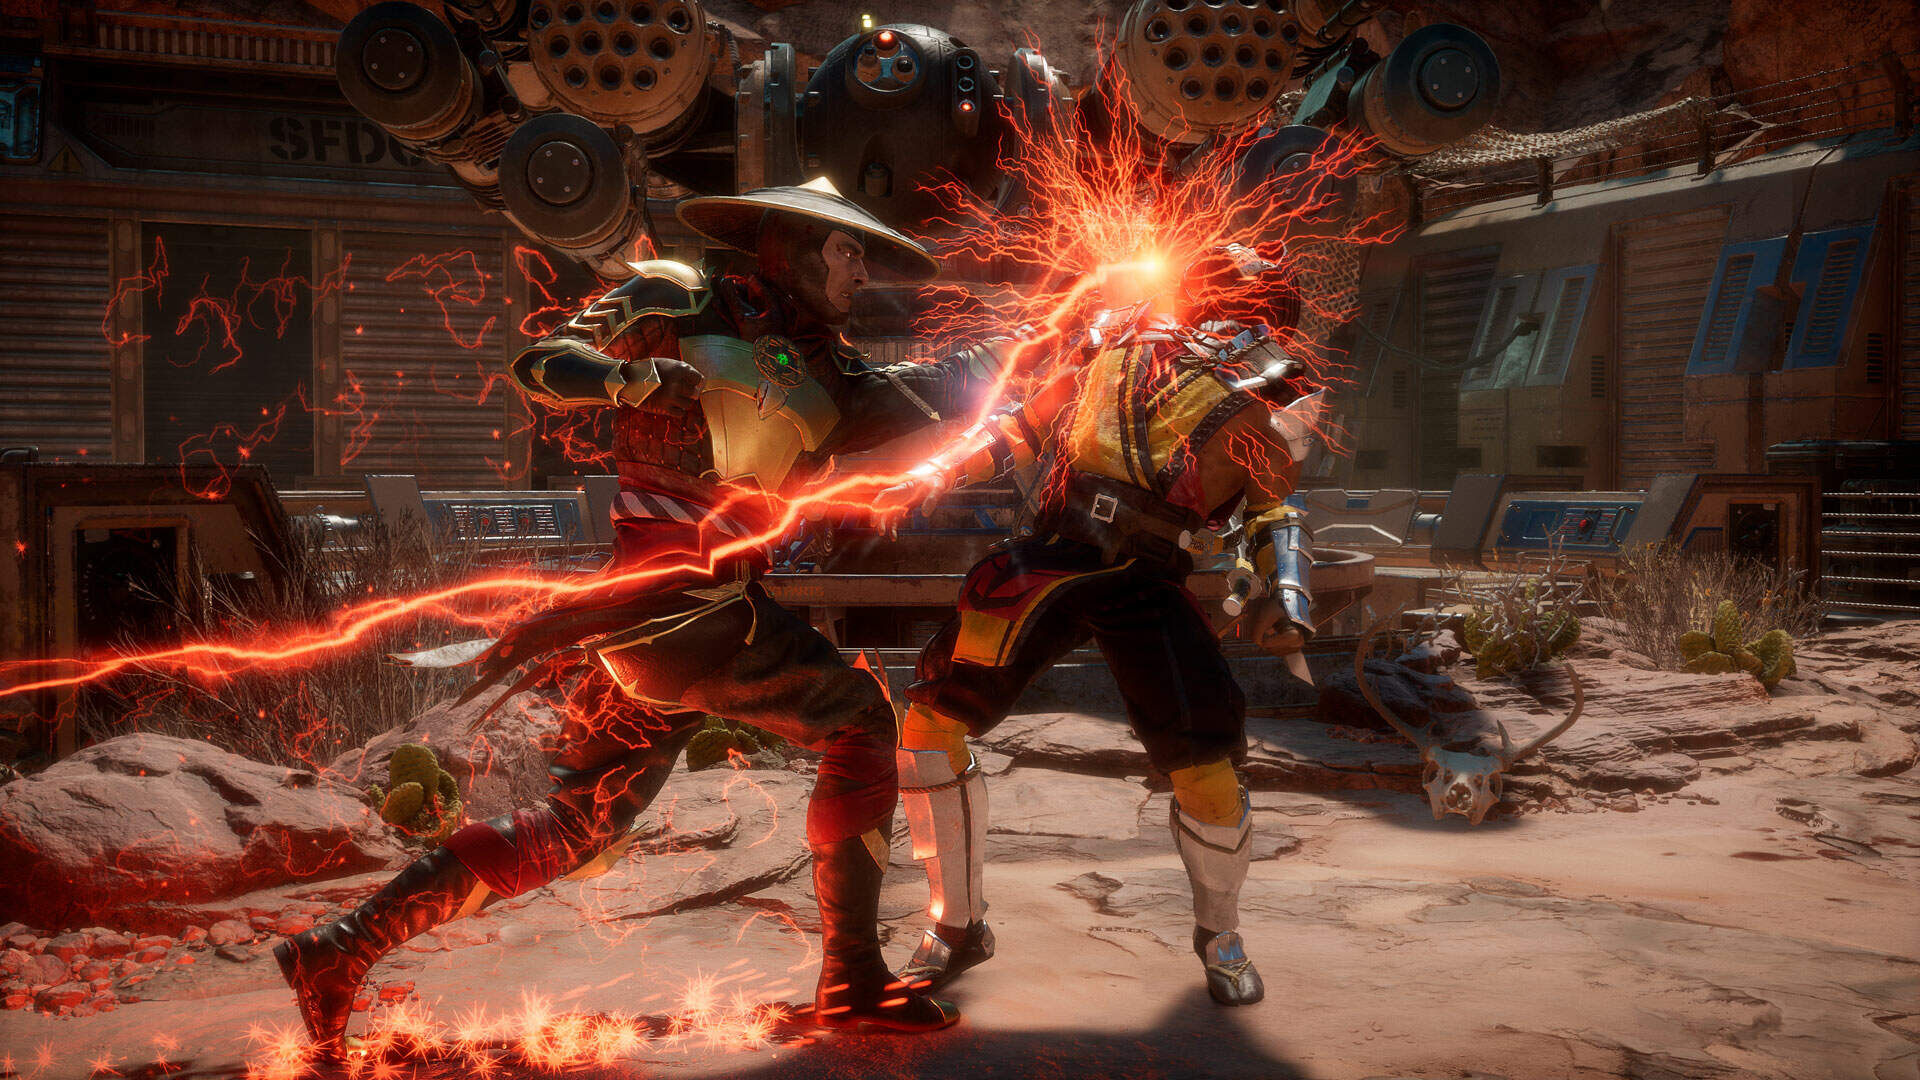 NPD: Mortal Kombat 11 Is Now the Bestselling Game of 2019 So Far